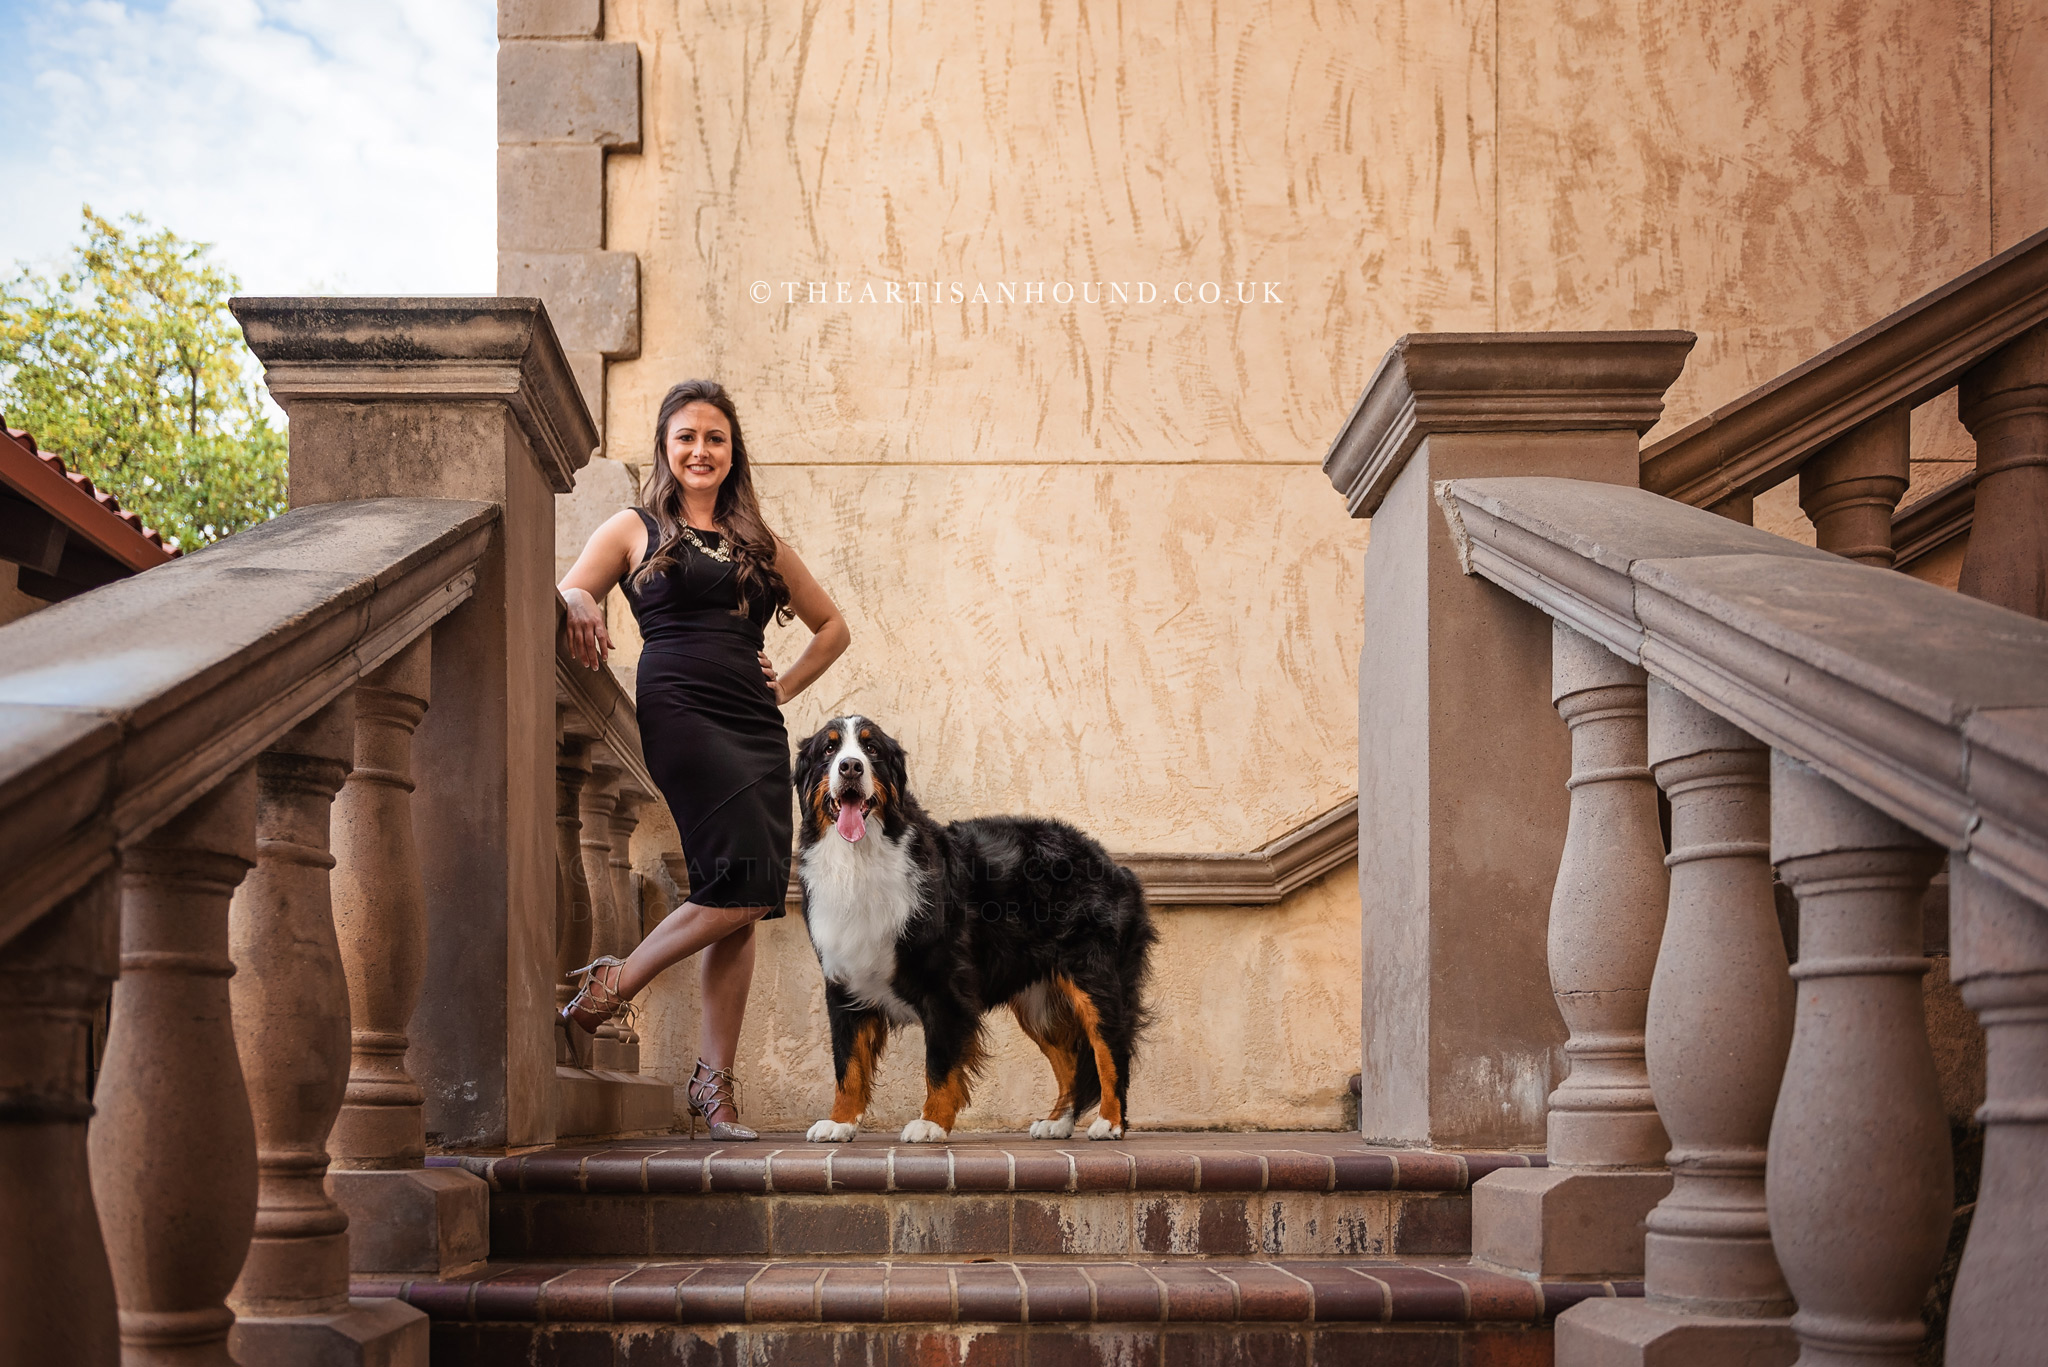 Dog and owner on staircase in Las Colinas canals